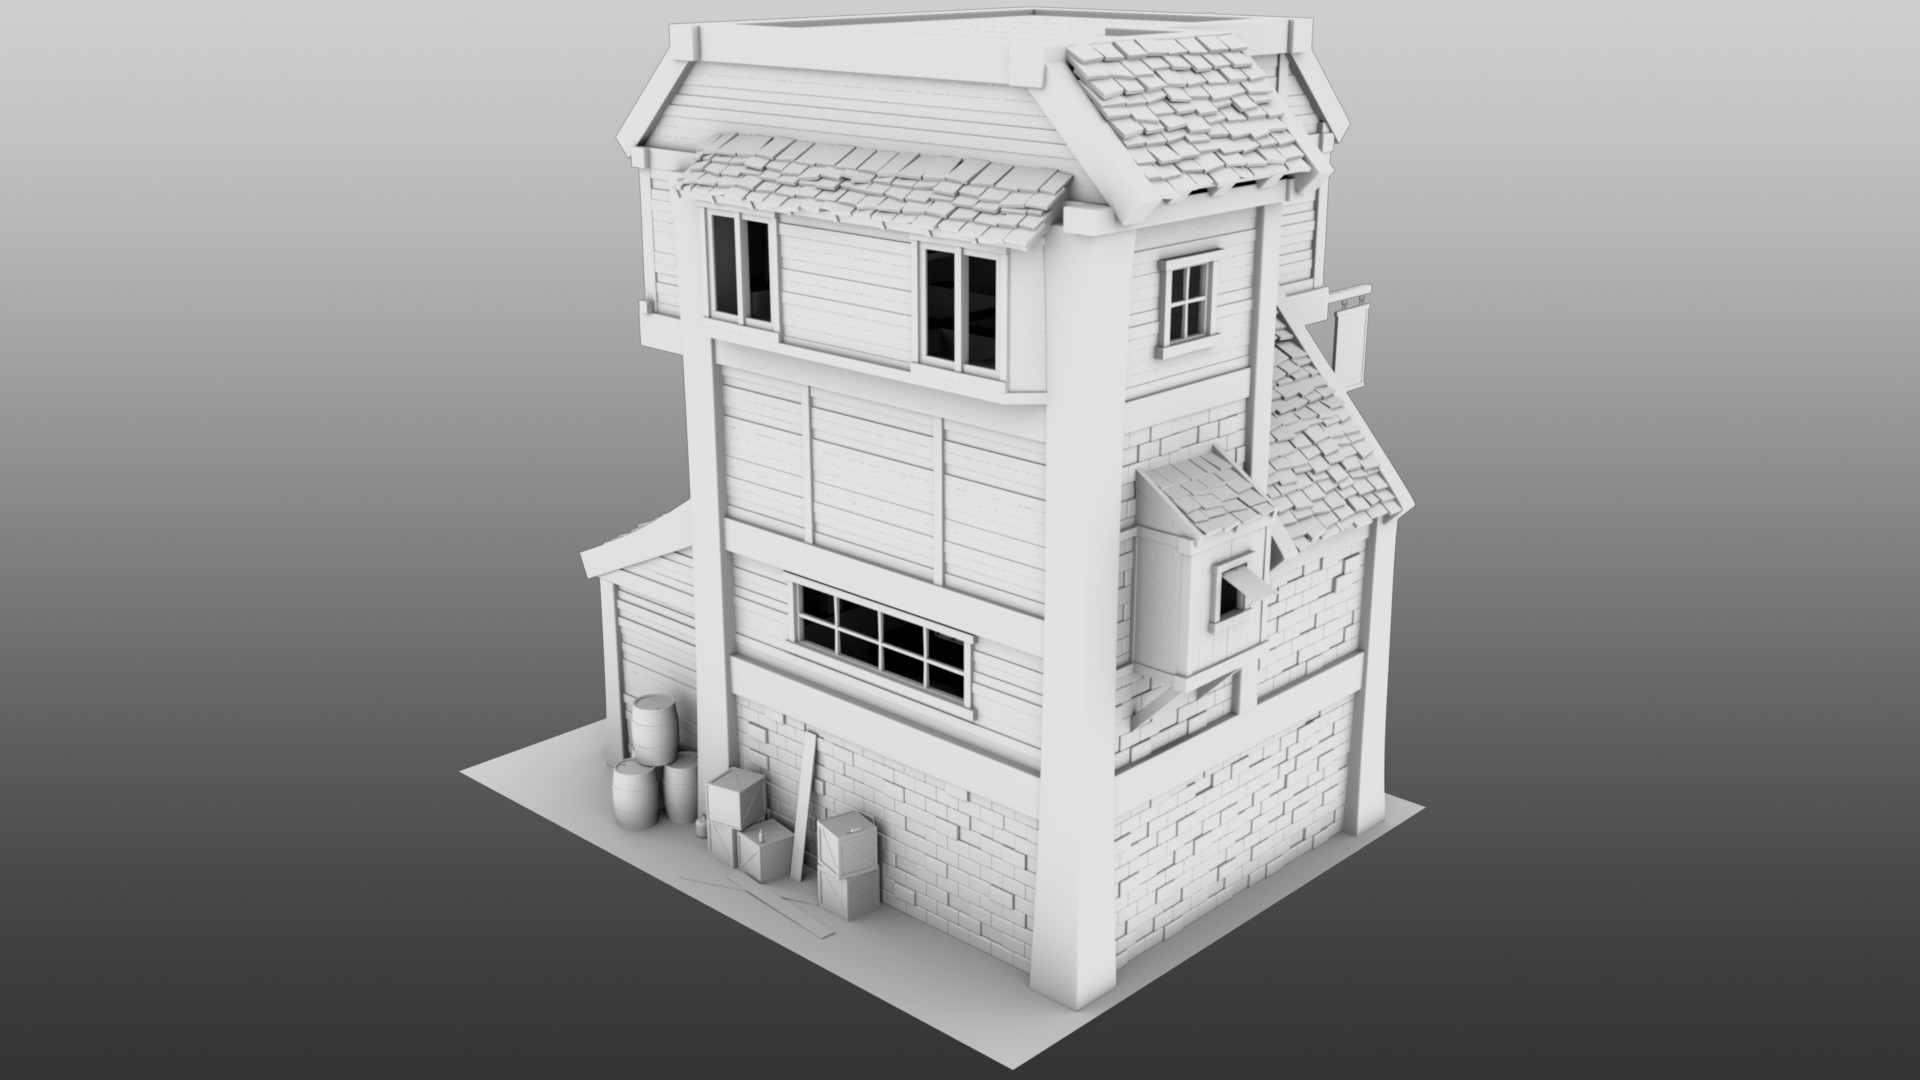 Sam donez tavern render rear 300dpiao dark gradient